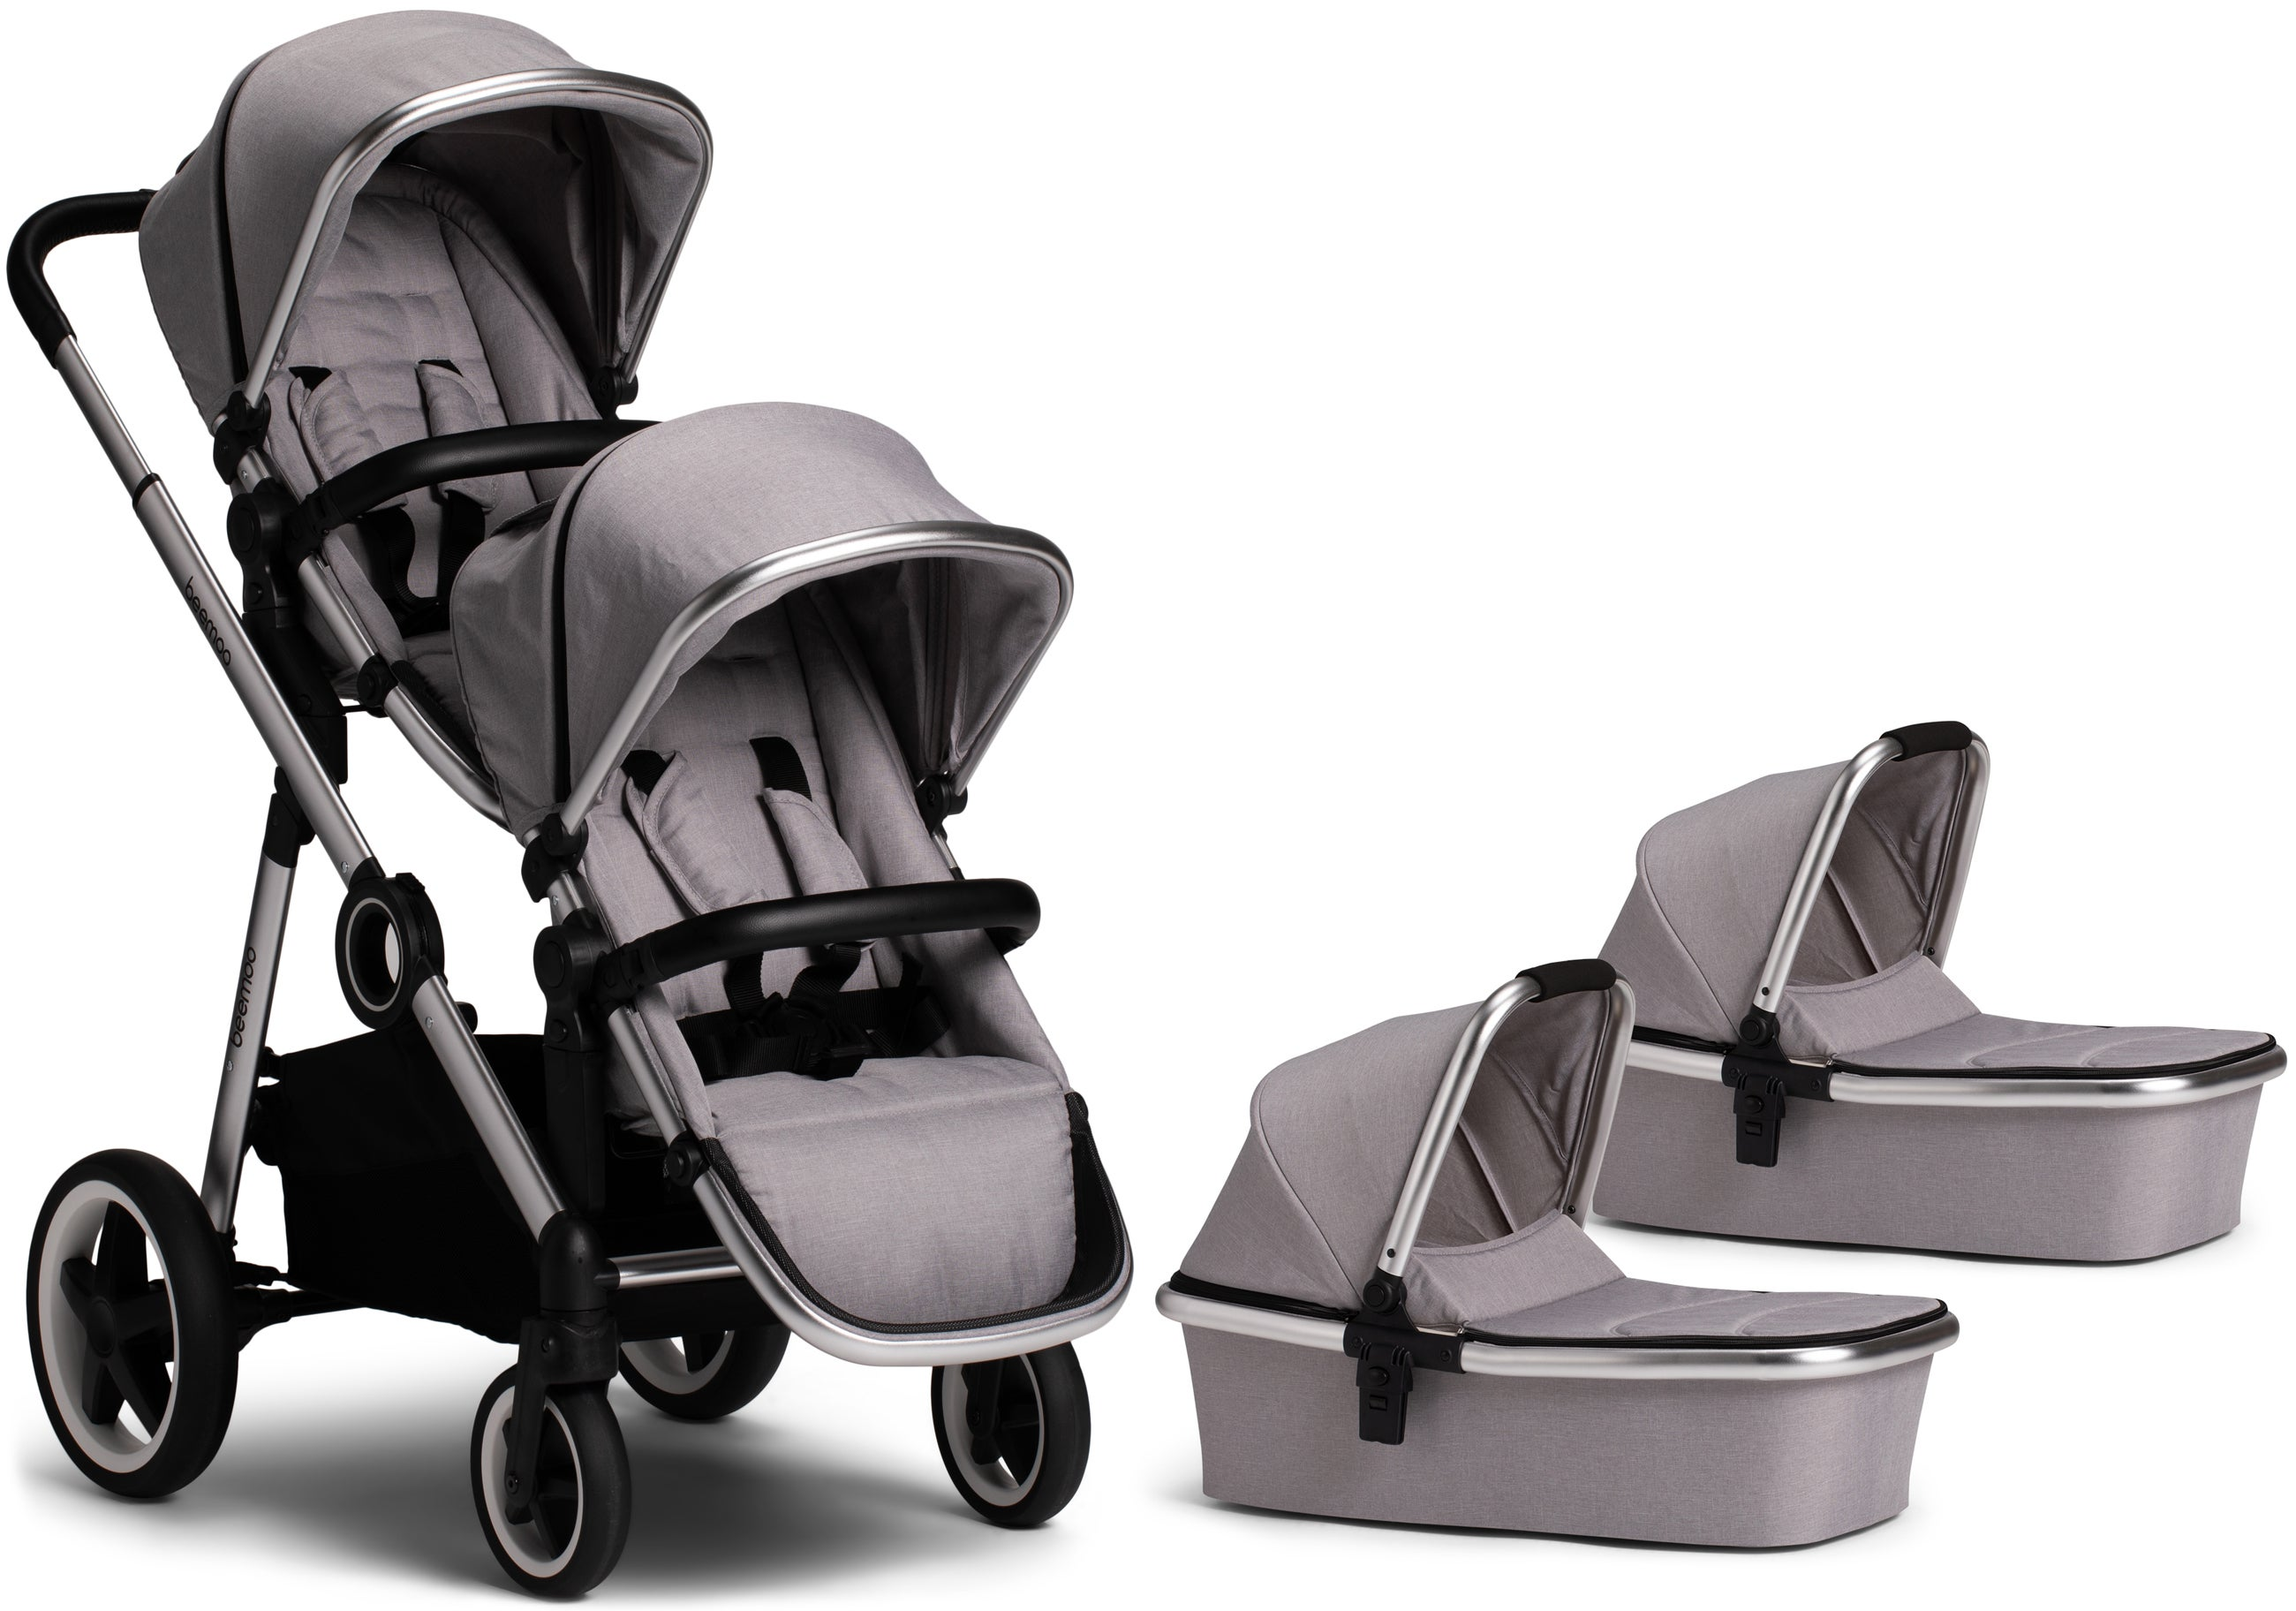 Beemoo Twin Travel+ 2019 Tvillingvagn, Light Grey